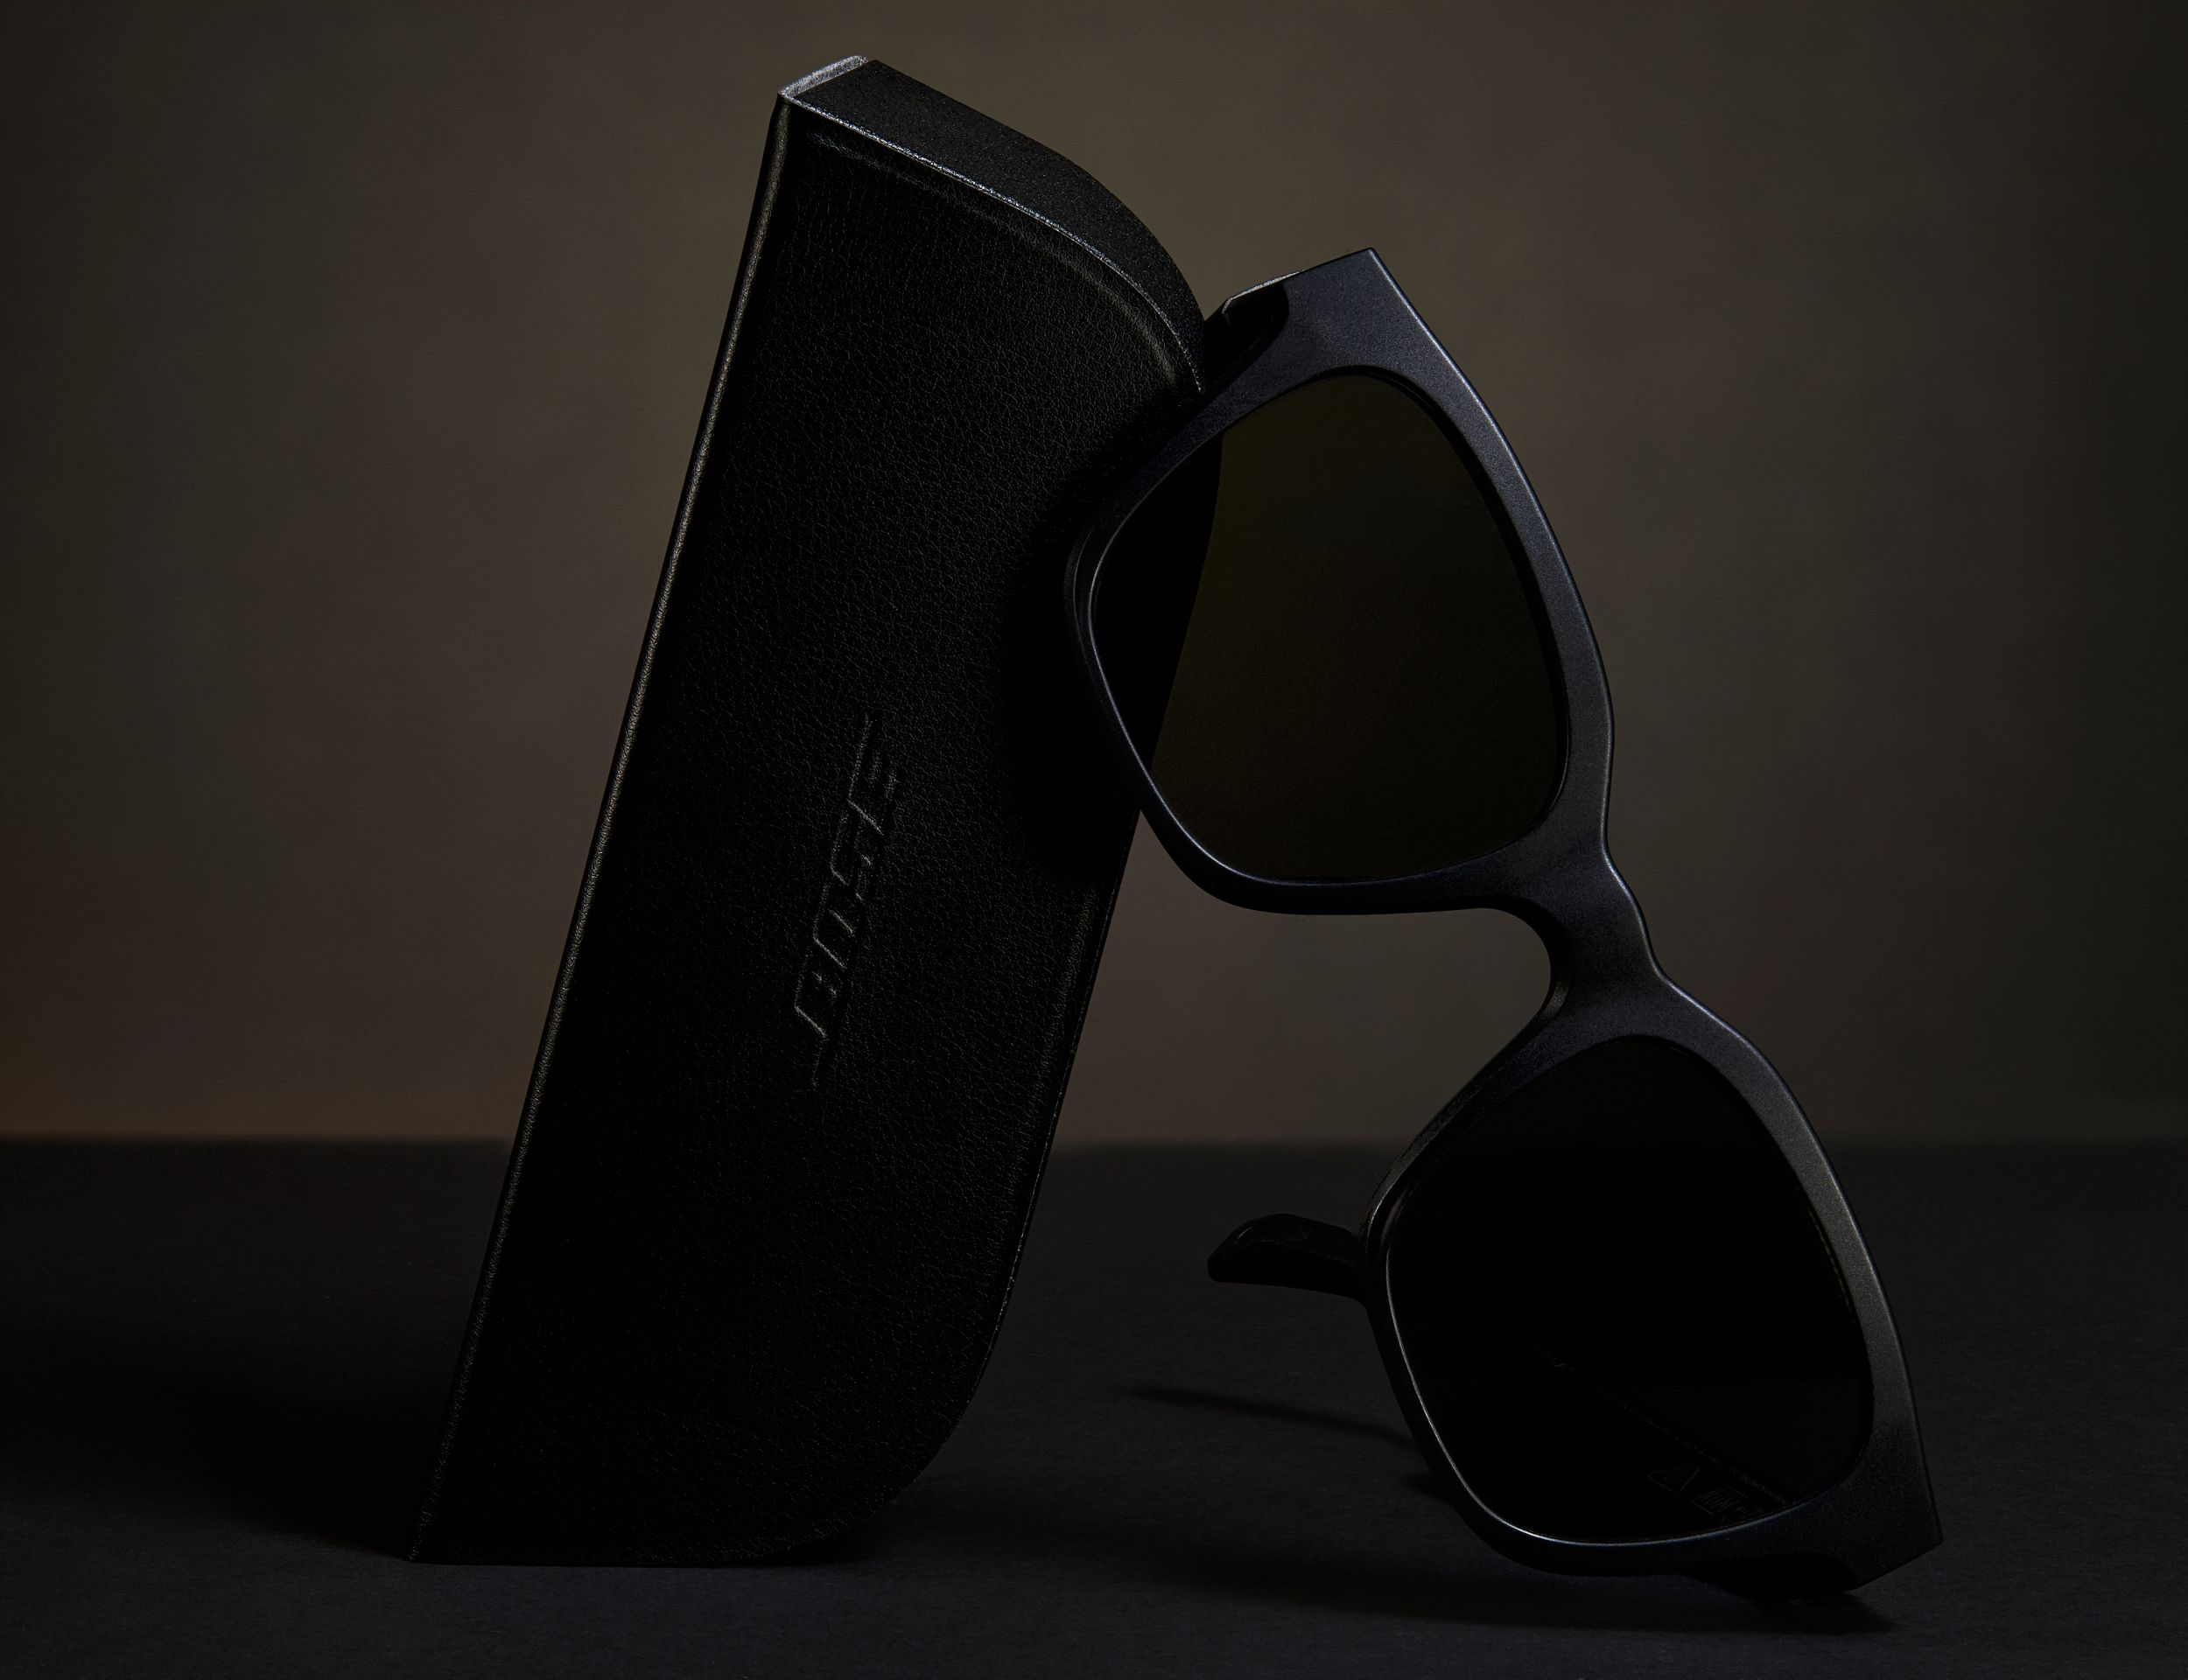 product photography bose glasses